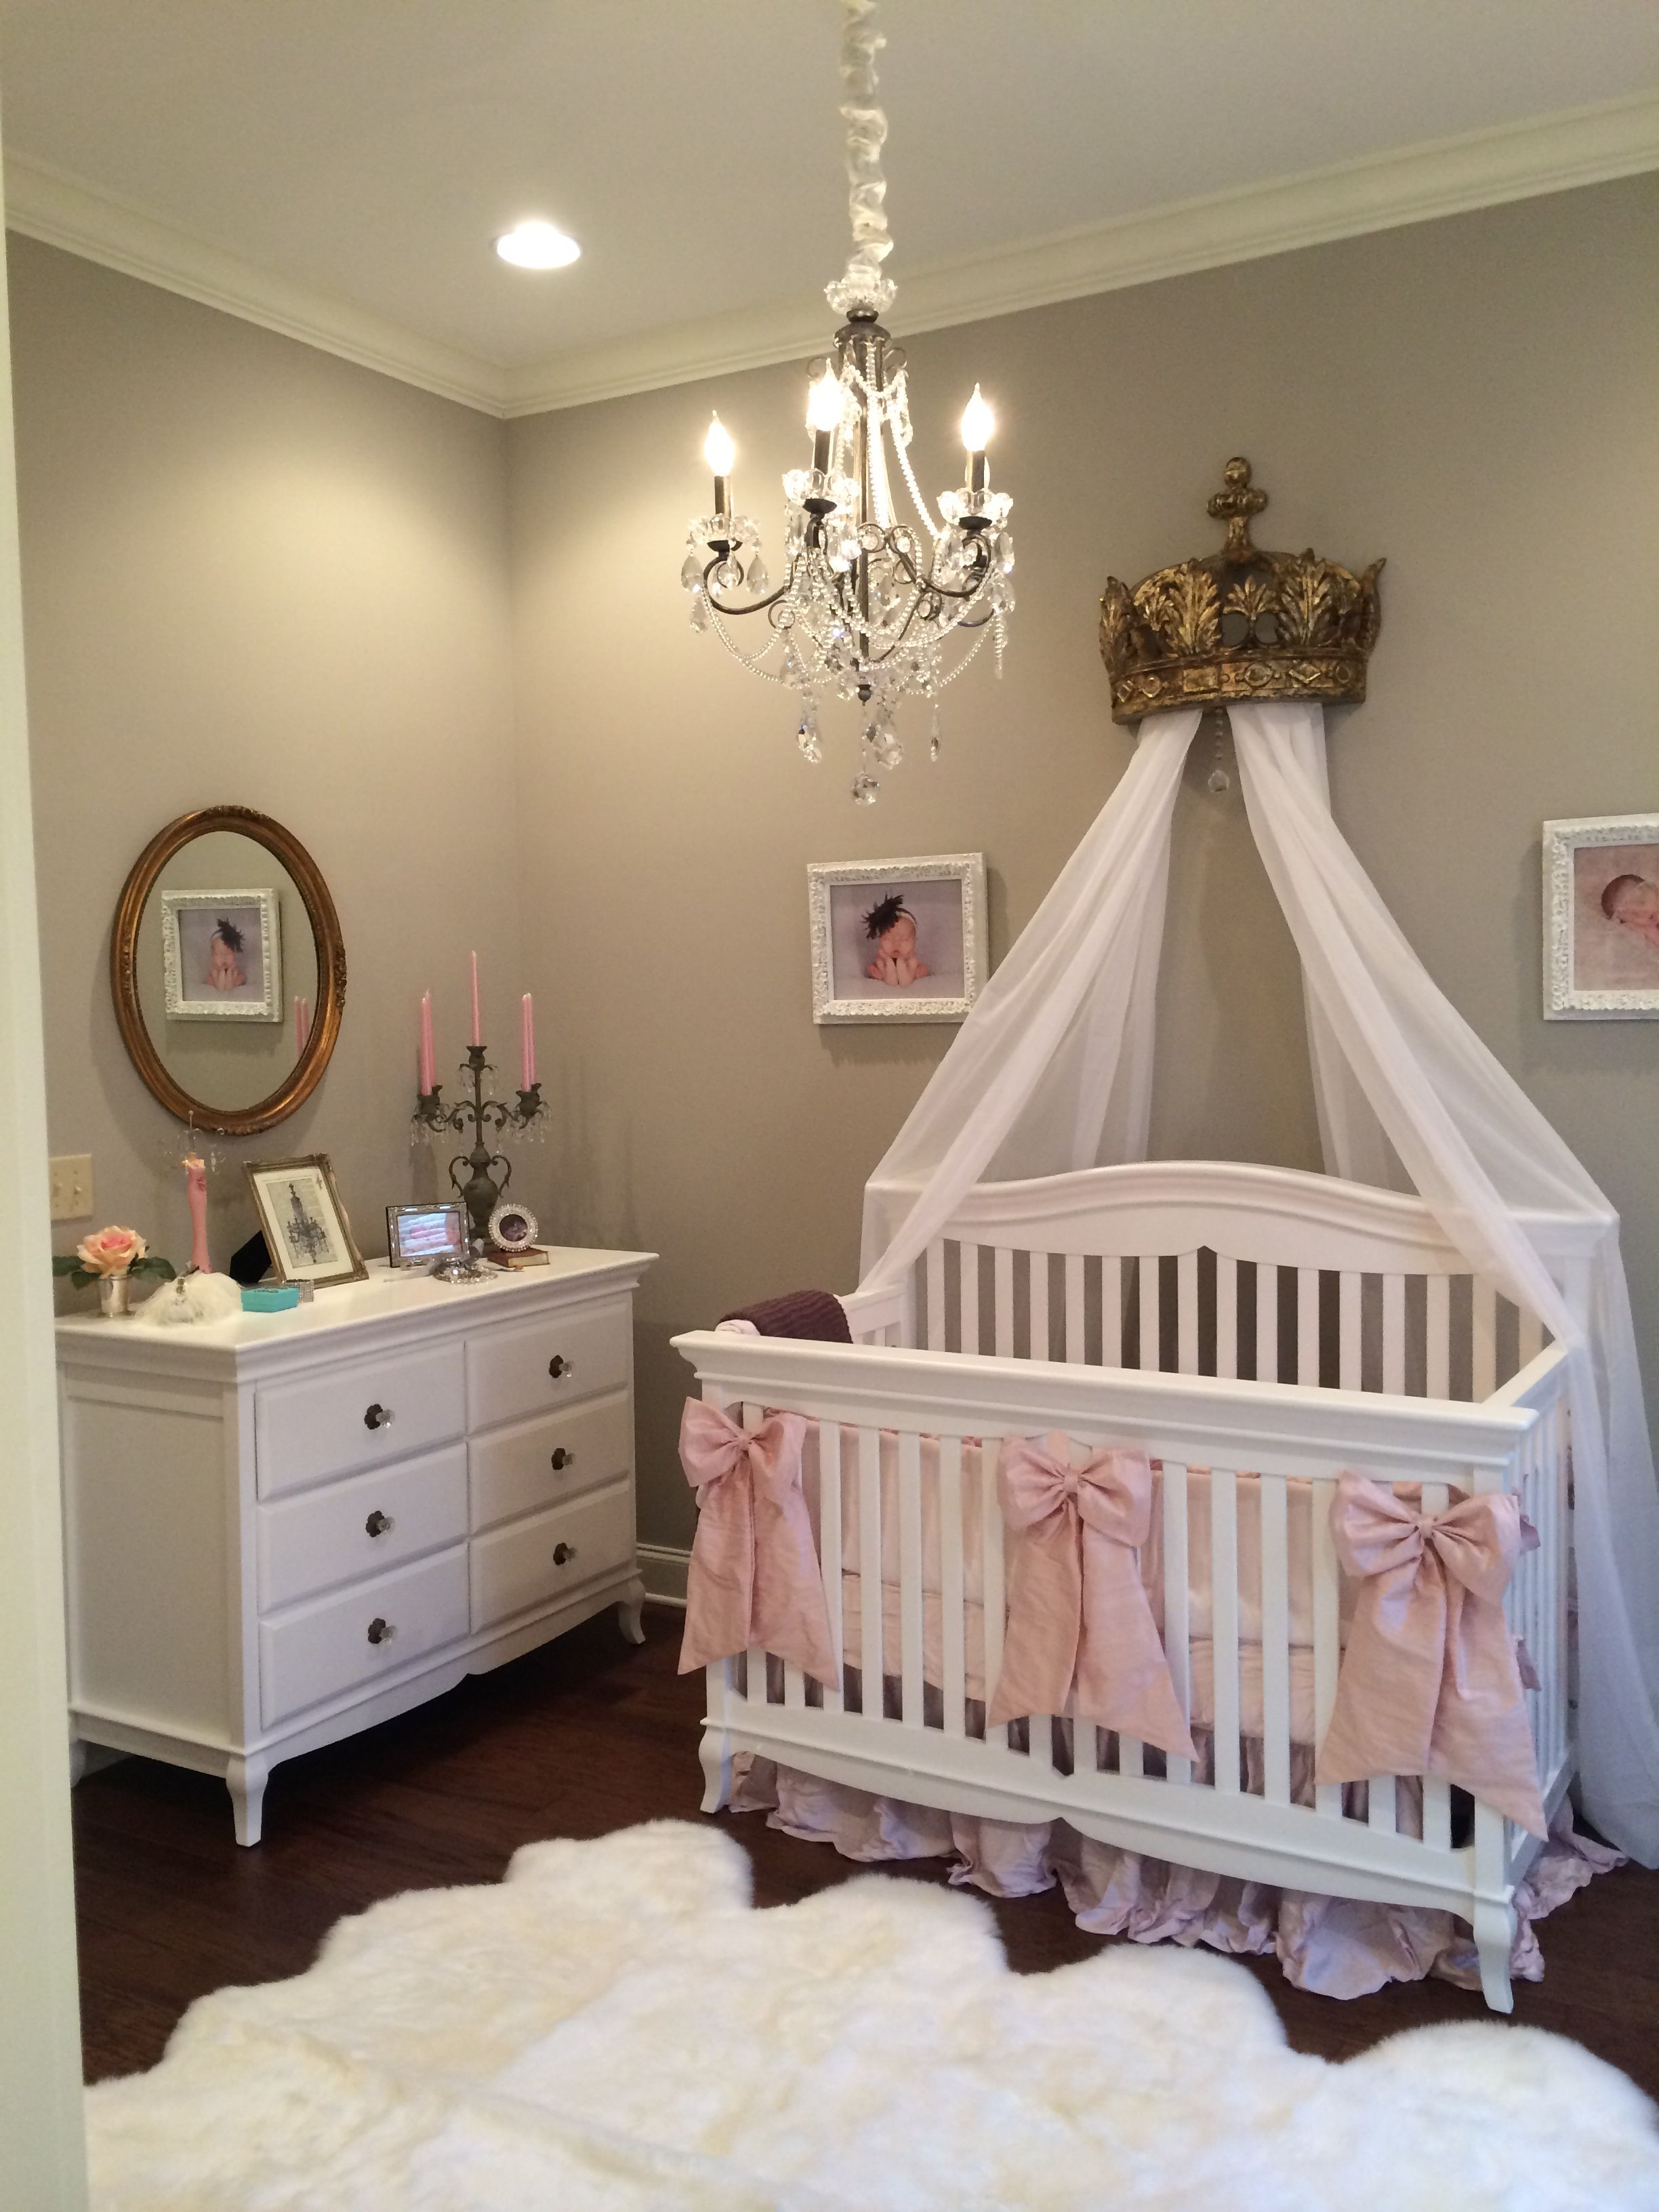 Design Of Baby Room: 100+ Baby Girl Nursery Design Ideas